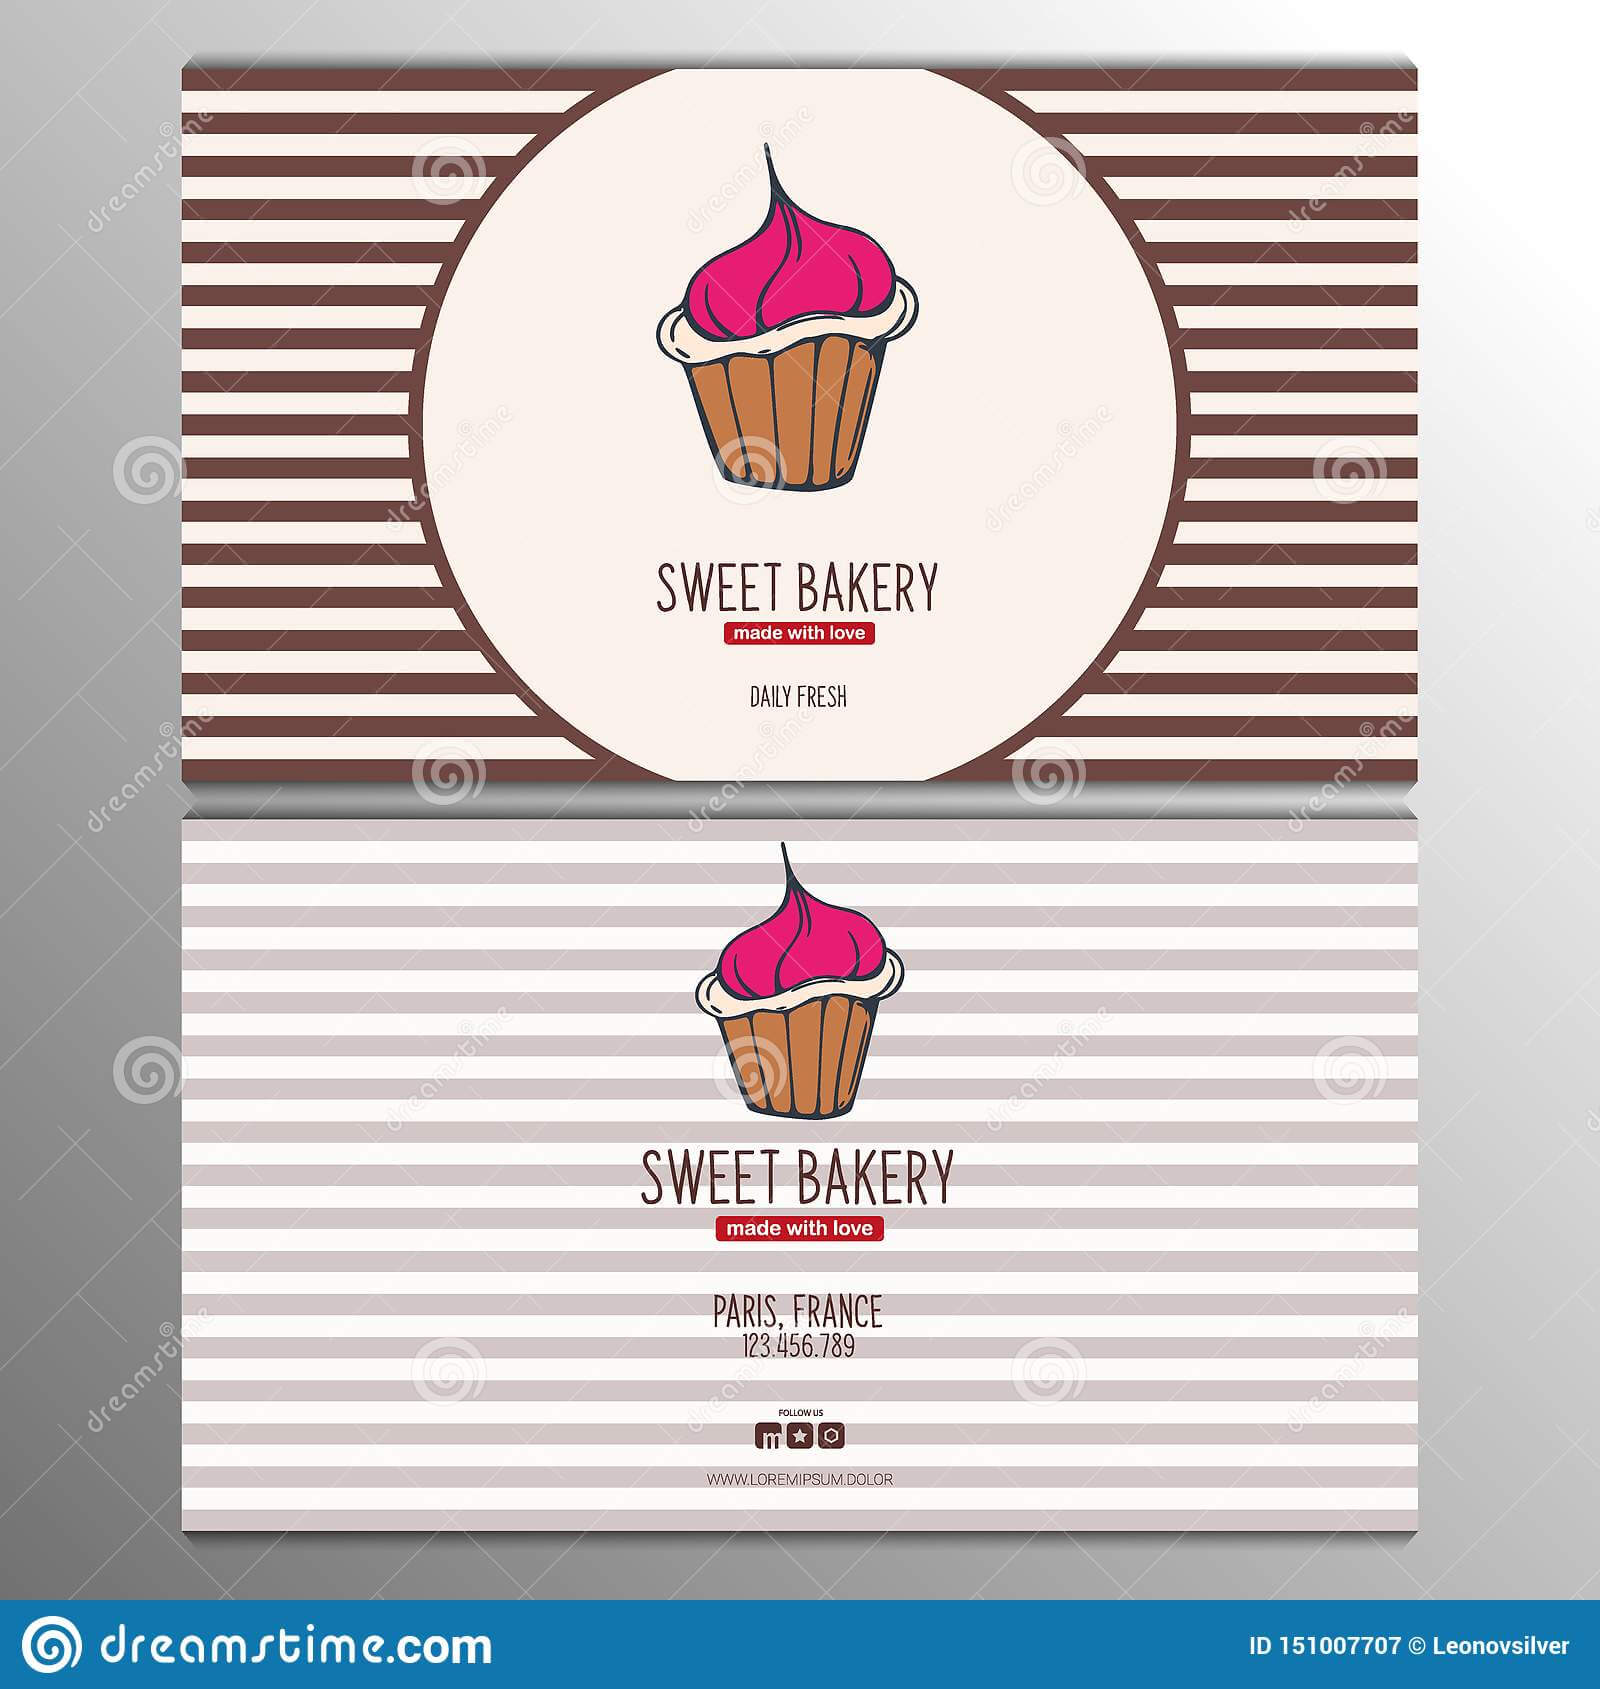 Cupcake Or Cake Business Card Template For Bakery Or Pastry In Cake Business Cards Templates Free